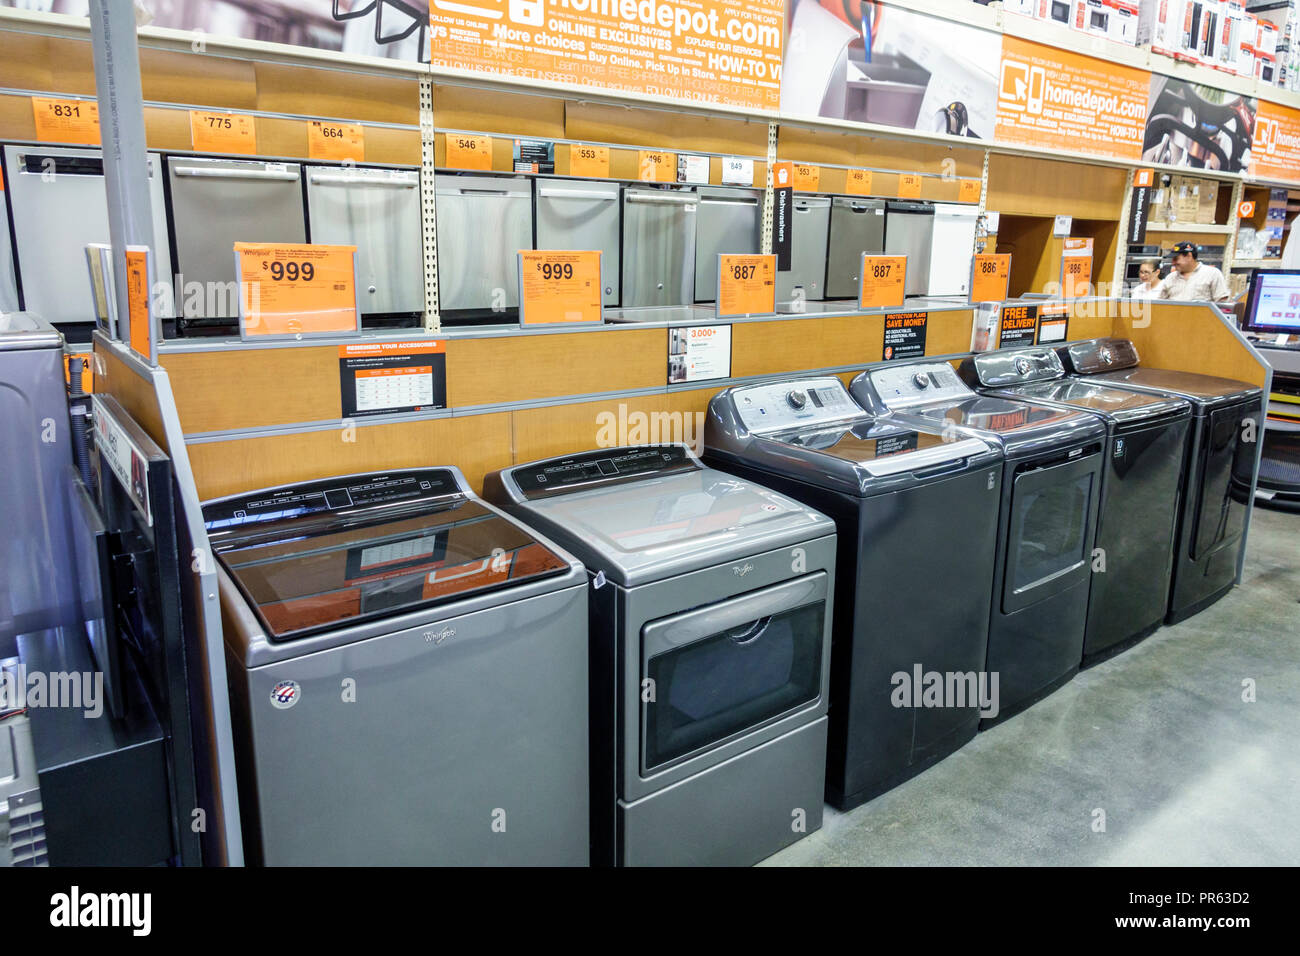 Miami Florida The Home Depot inside shopping top load clothes washer - Stock Image